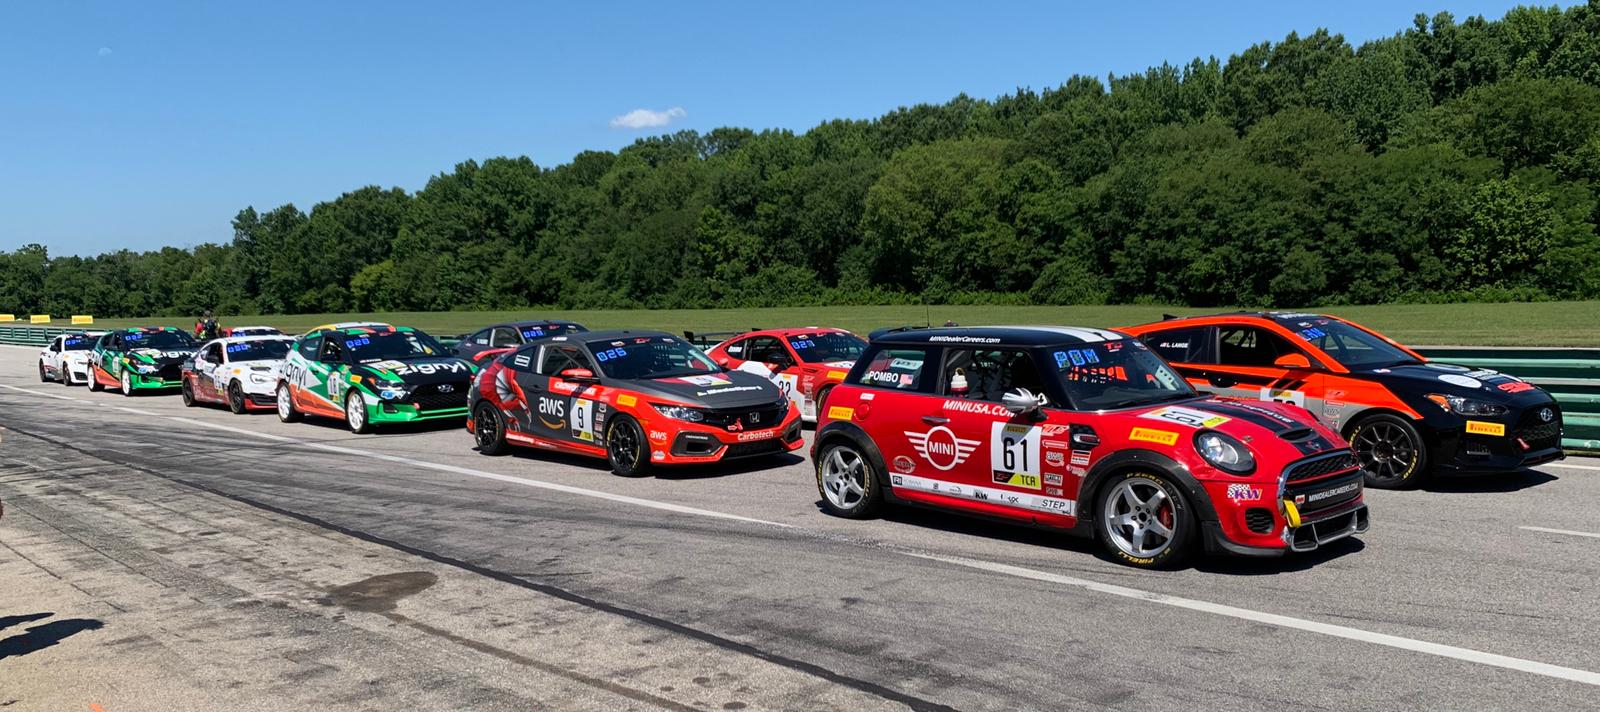 The TCA starting grid for Race 2.